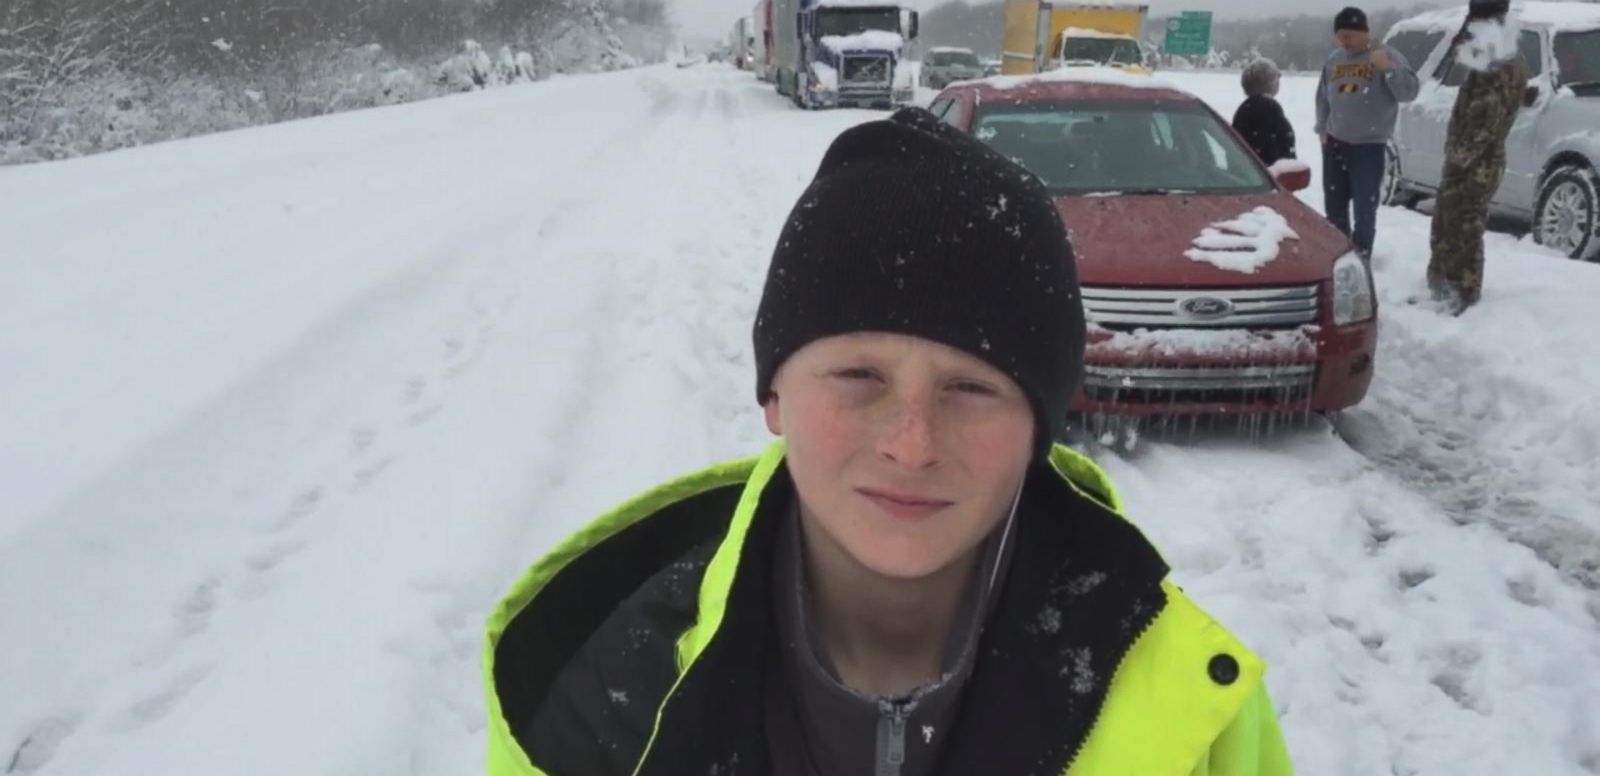 VIDEO: Adam Kehoe reports from I-65 as his family is stuck on the road during a winter storm.